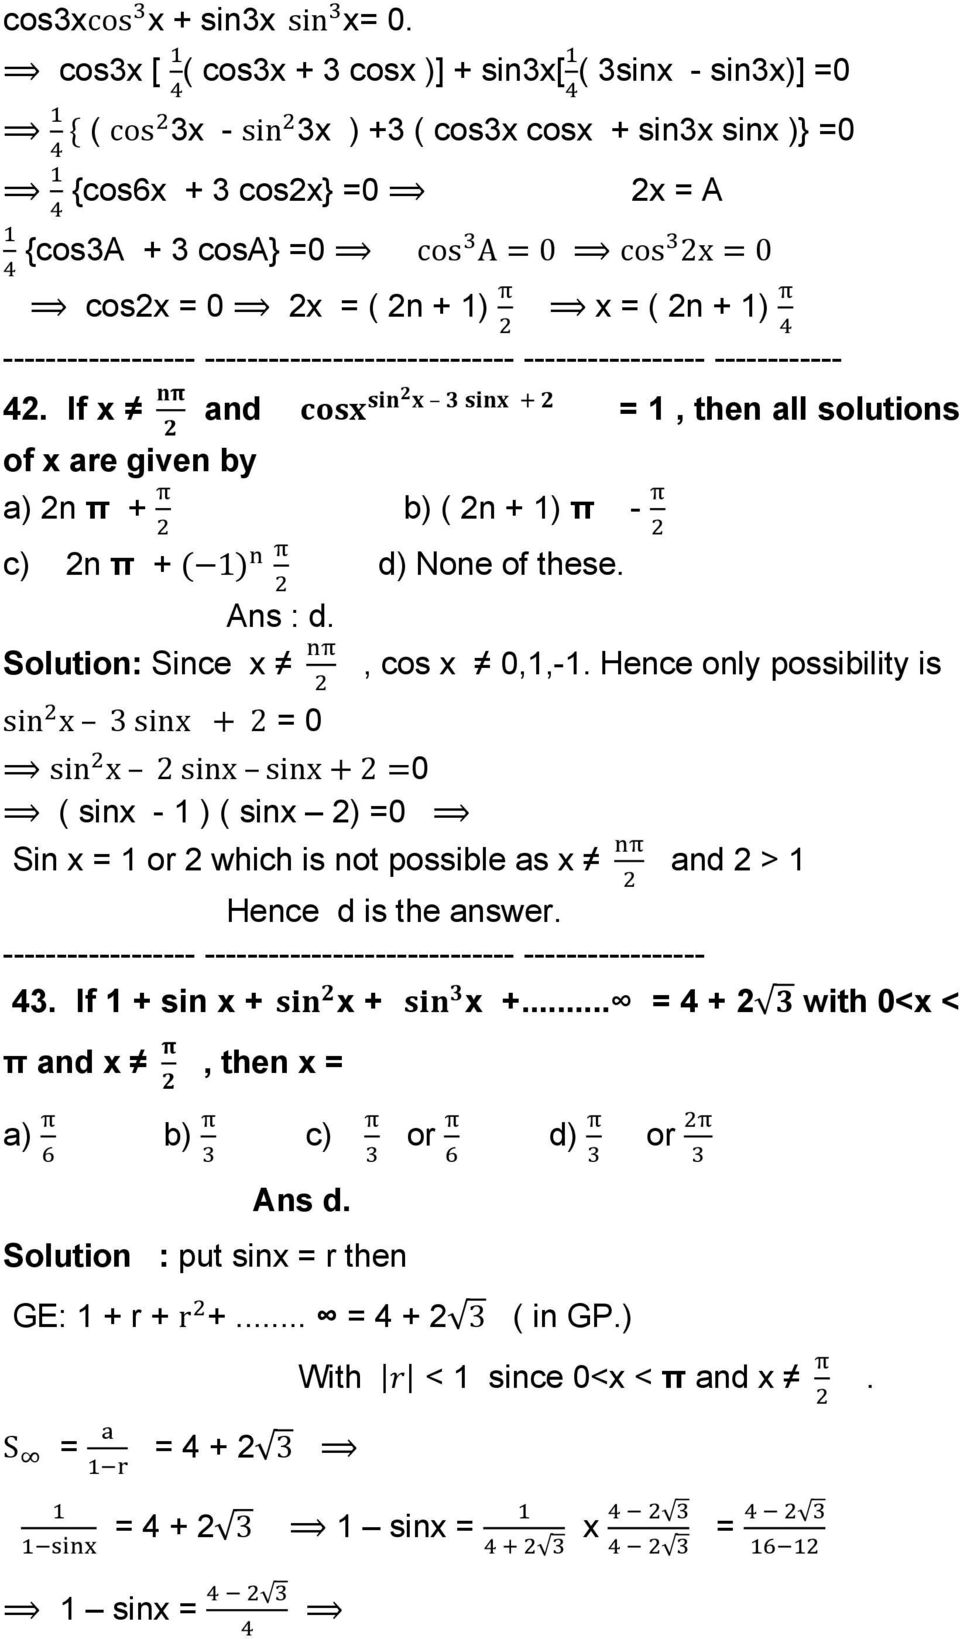 1) x = ( 2n + 1) 42. If x and = 1, then all solutions of x are given by a) 2n π + b) ( 2n + 1) π - c) 2n π + 1 d) None of these. Ans : d. Solution: Since x, cos x 0,1,-1.